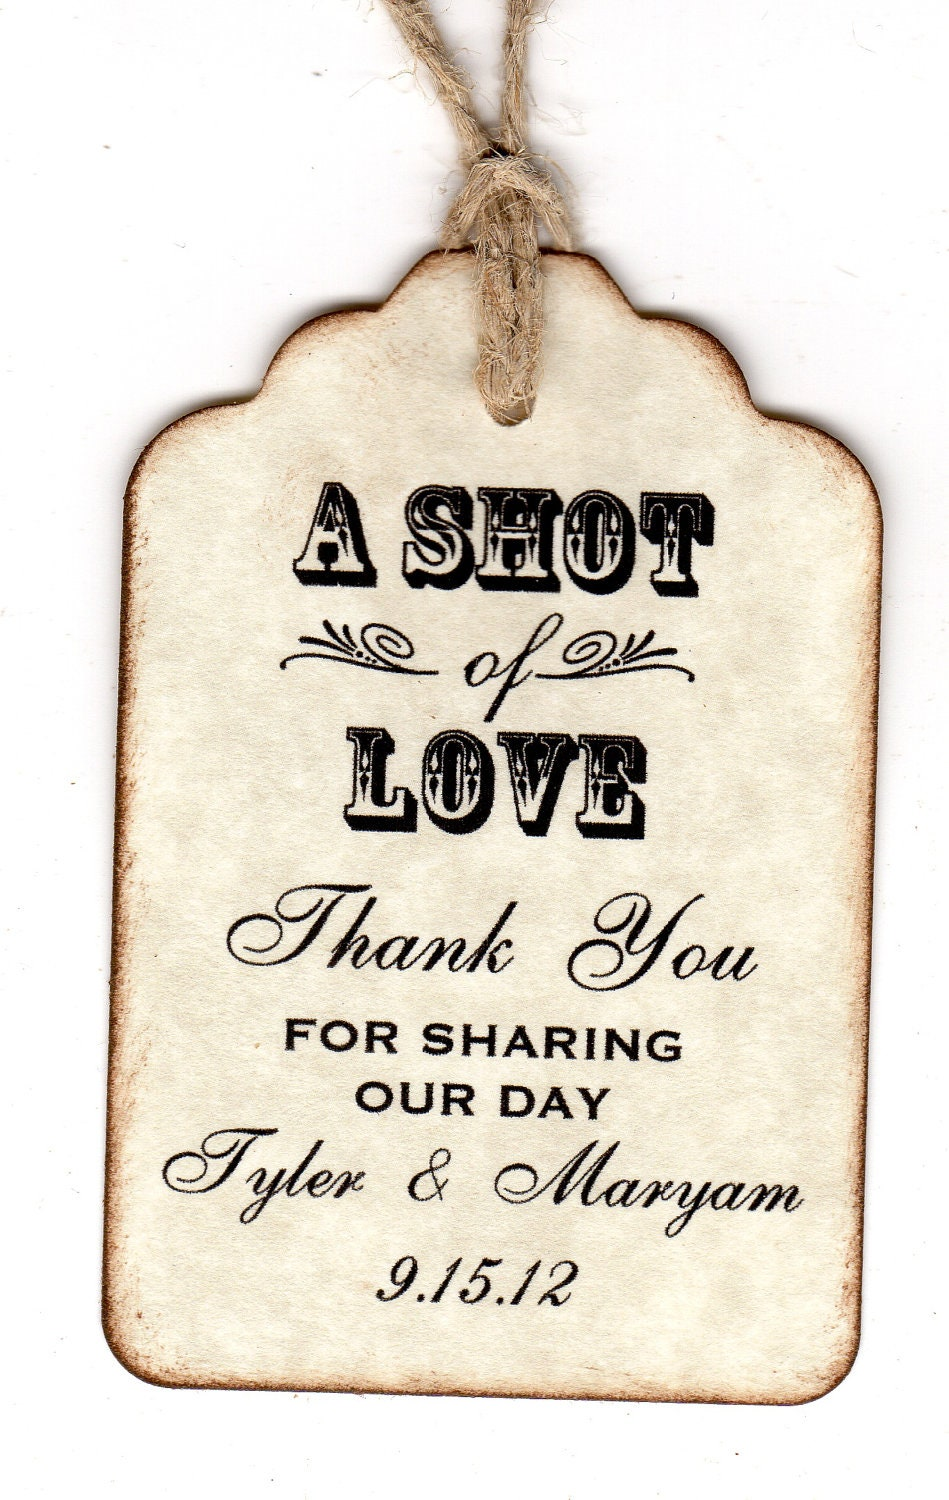 Wedding Favor Tags Messages : 50 Personalized Shot Of Love Wedding Favor Tags Place Card